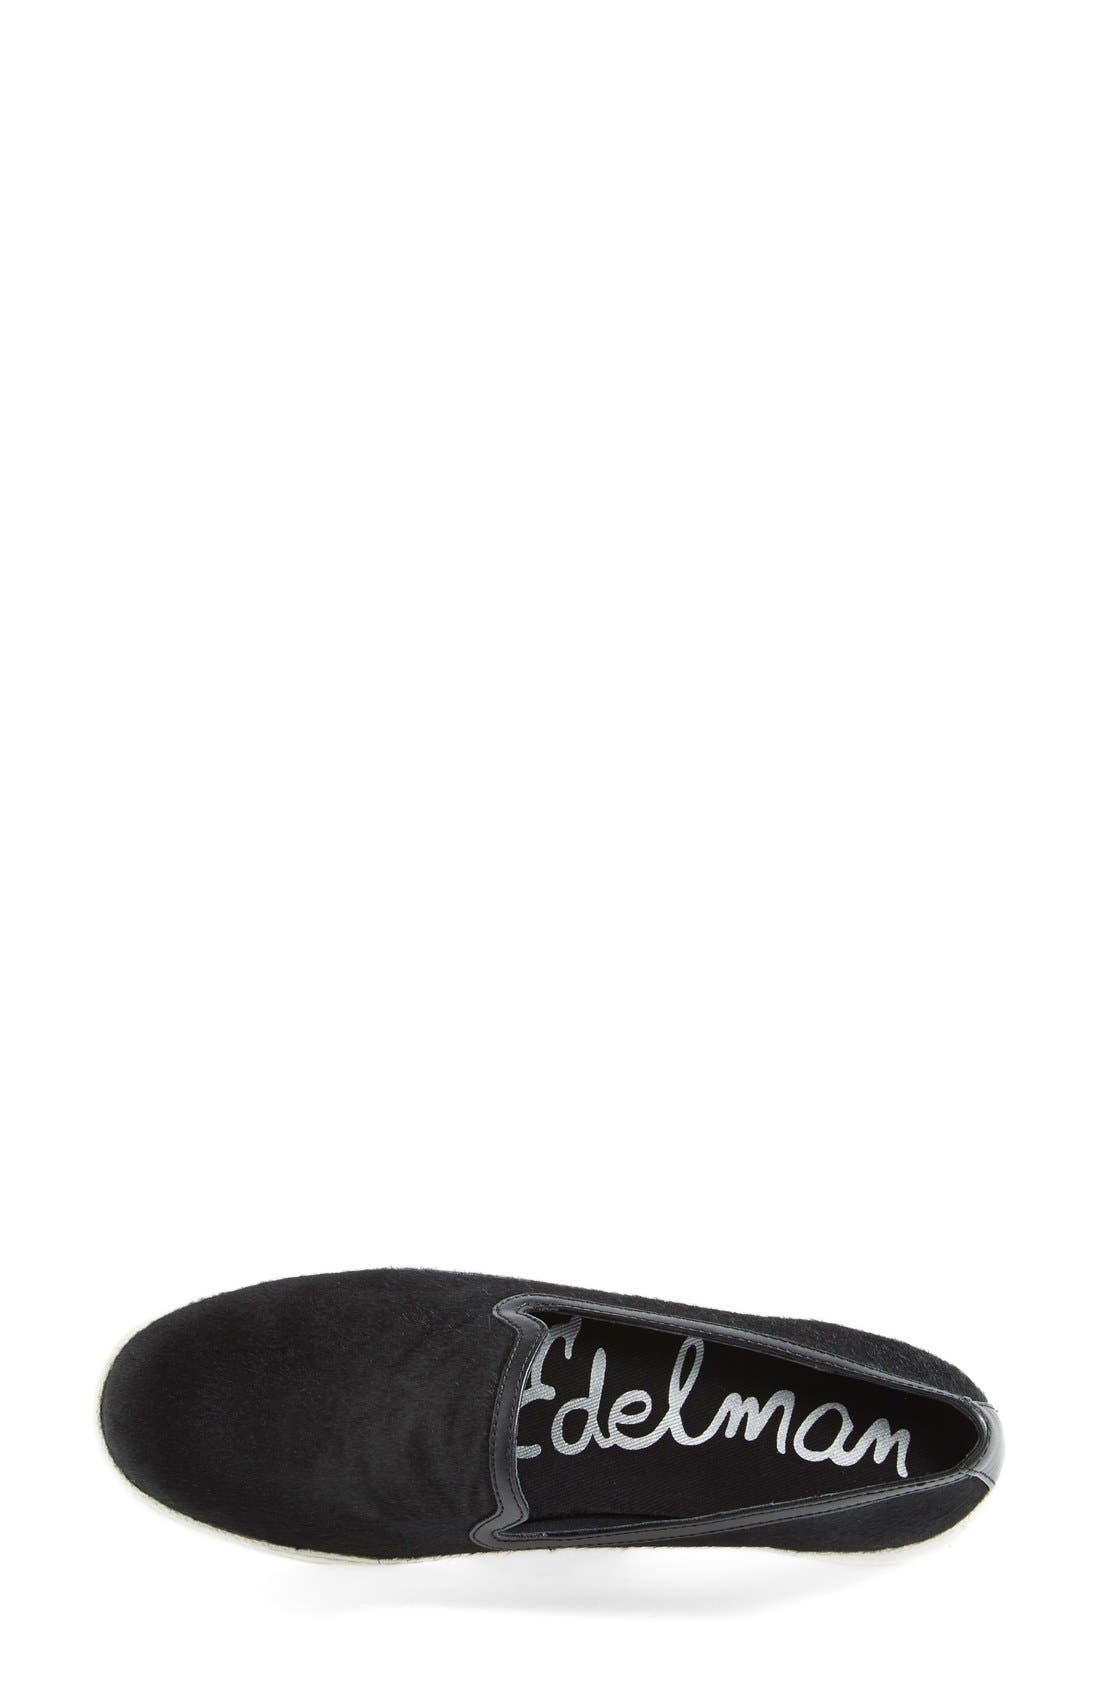 Alternate Image 3  - Sam Edelman 'Becker' Calf Hair Slip On